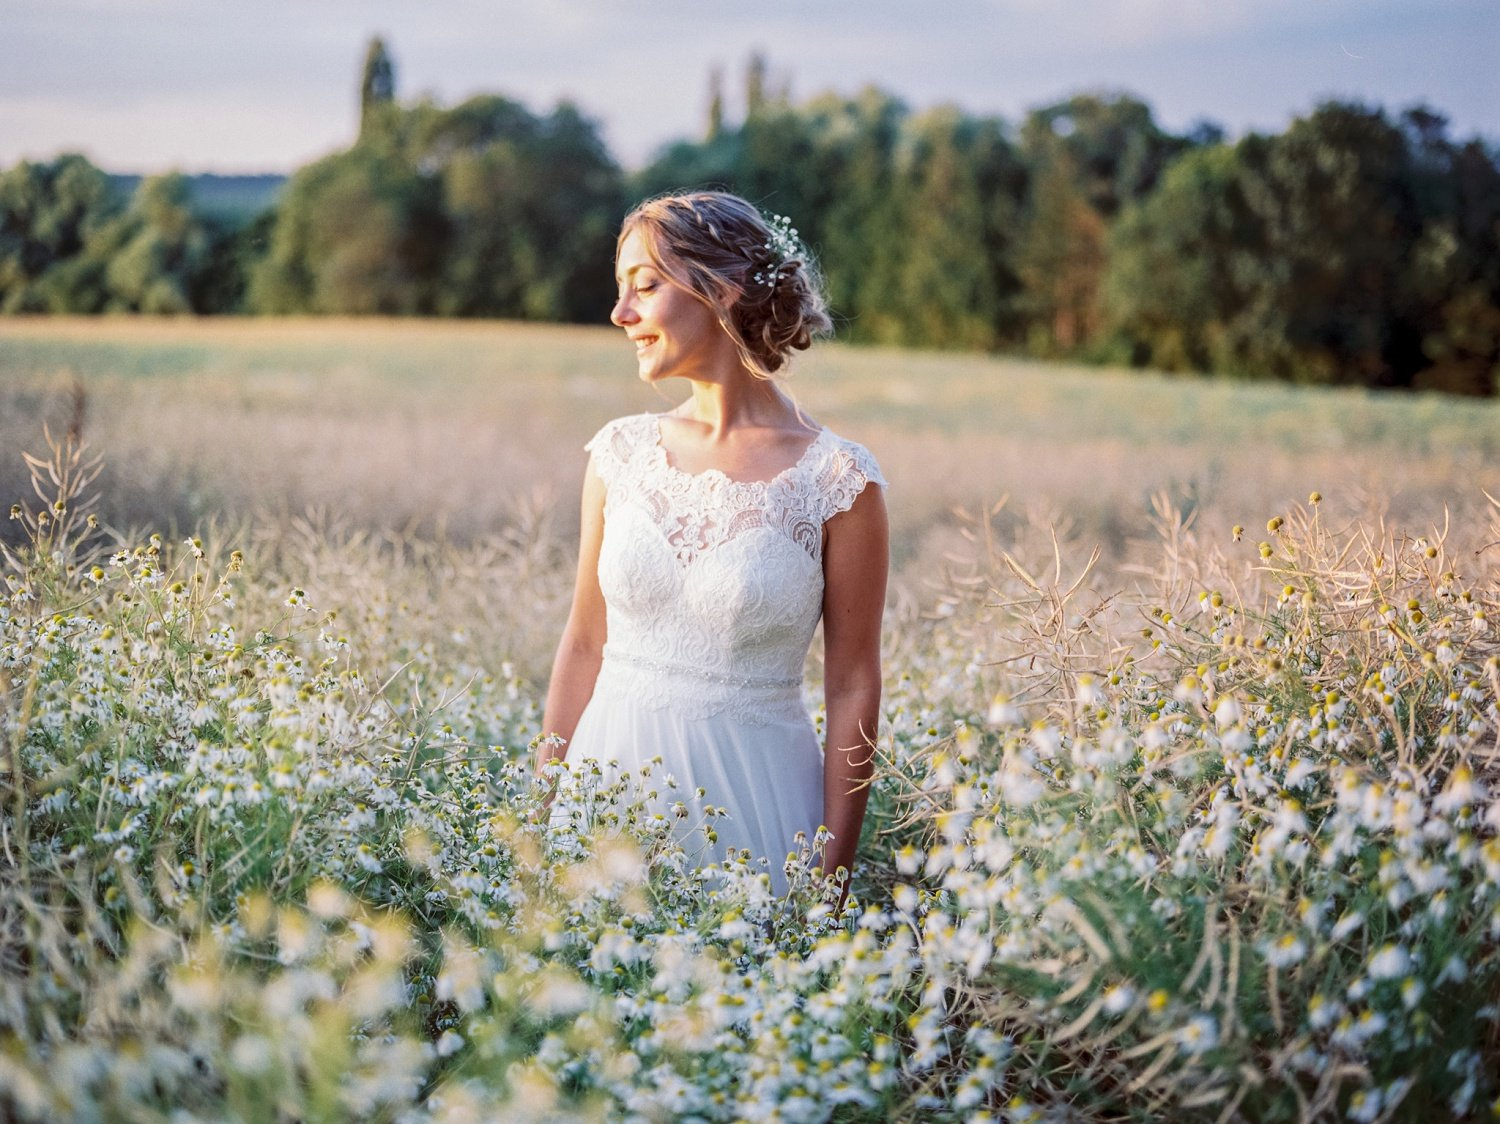 Bride feeling stunning during her portrait photo session as she wear natural makeup